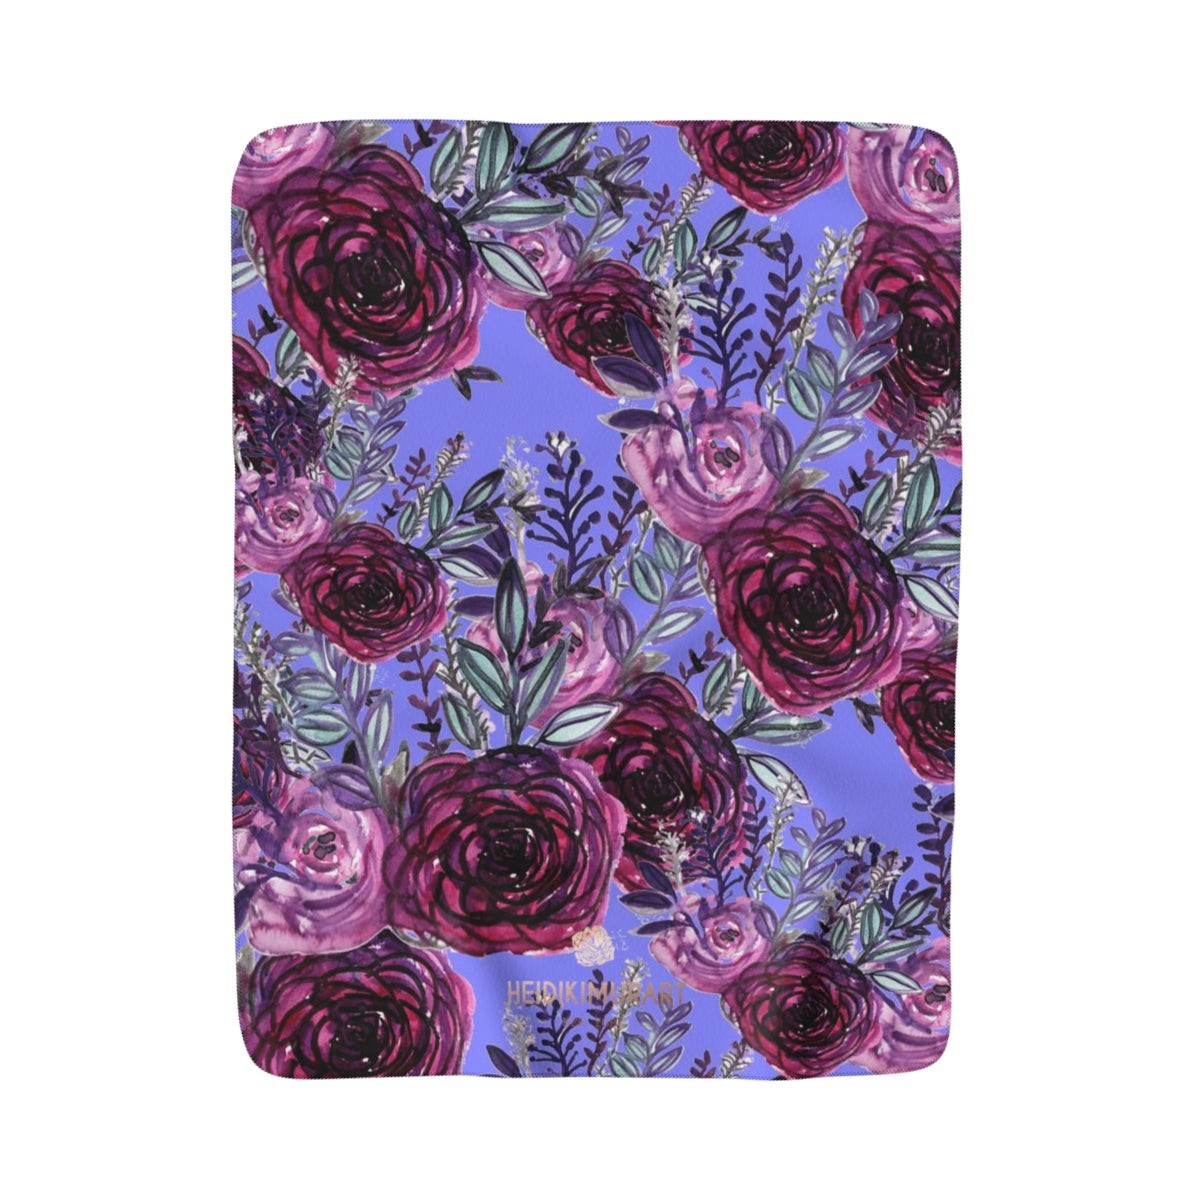 "Cute Purple Rose Flower Floral Print Designer 50""x60"" Sherpa Fleece Blanket-Made in USA-Blanket-50''x60''-Heidi Kimura Art LLC"